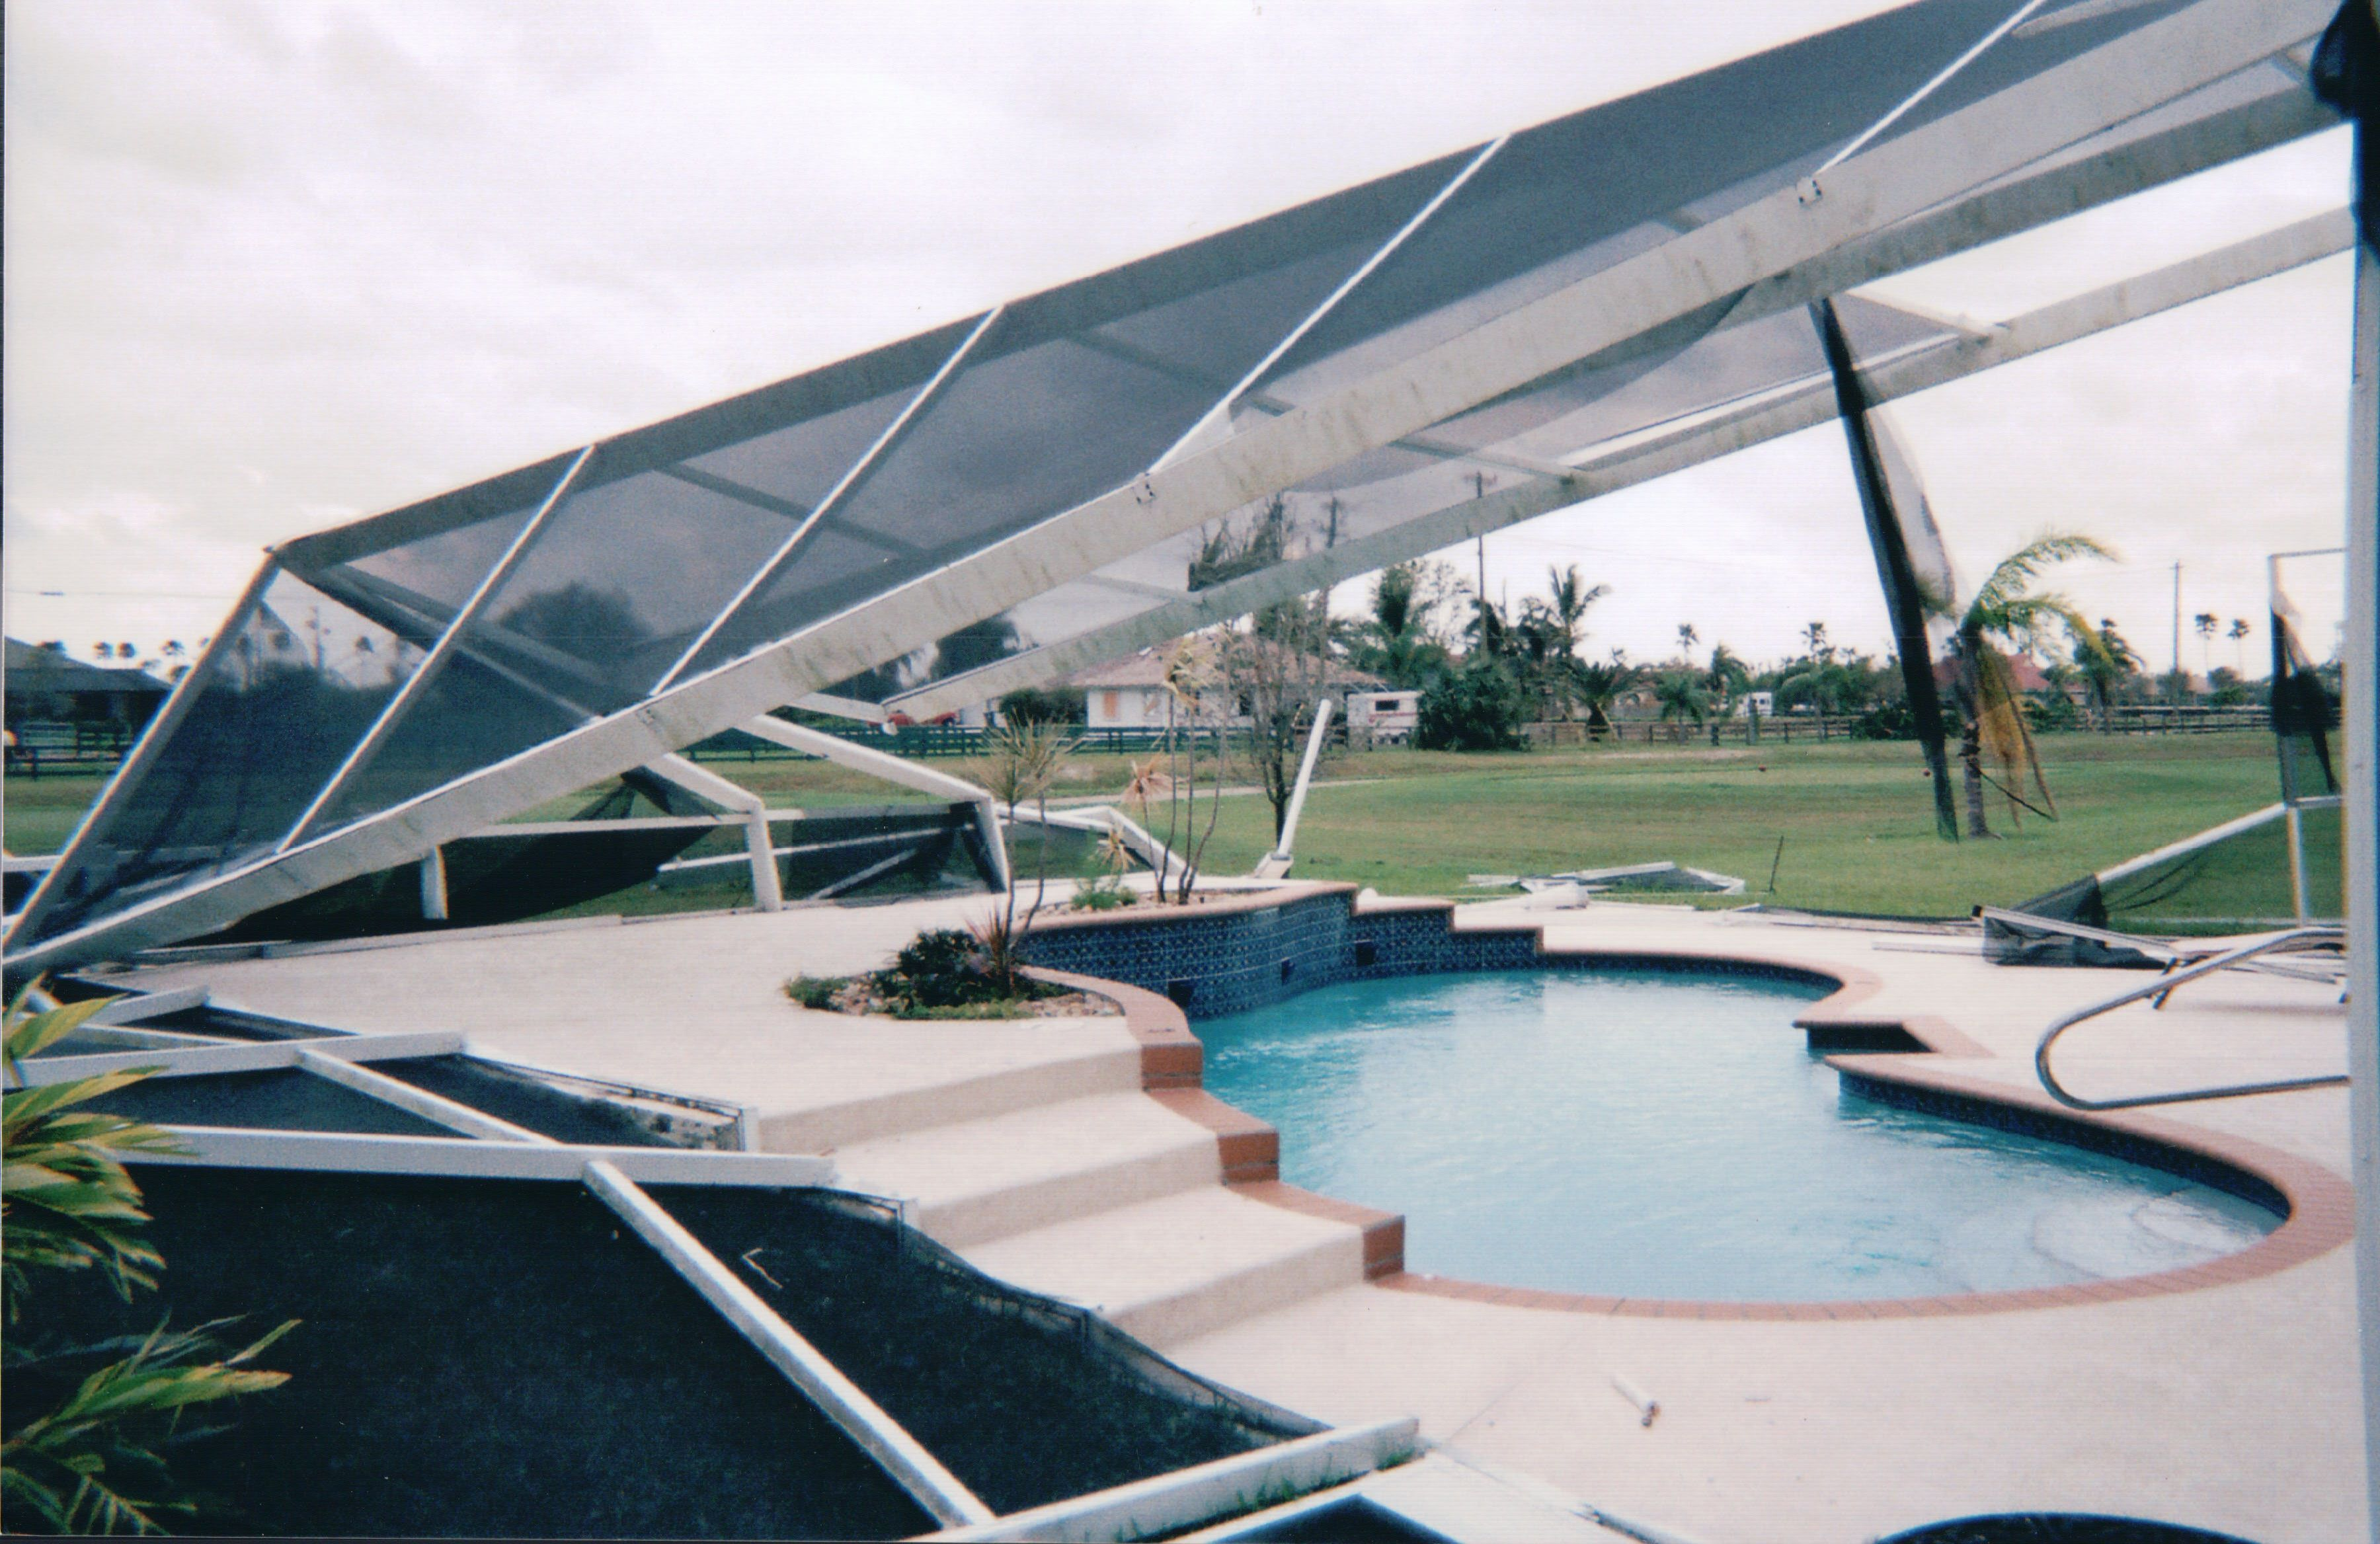 This Pool Screen Enclosure Was Ripped Off The House Screen Enclosures Pool Screen Enclosure Pool